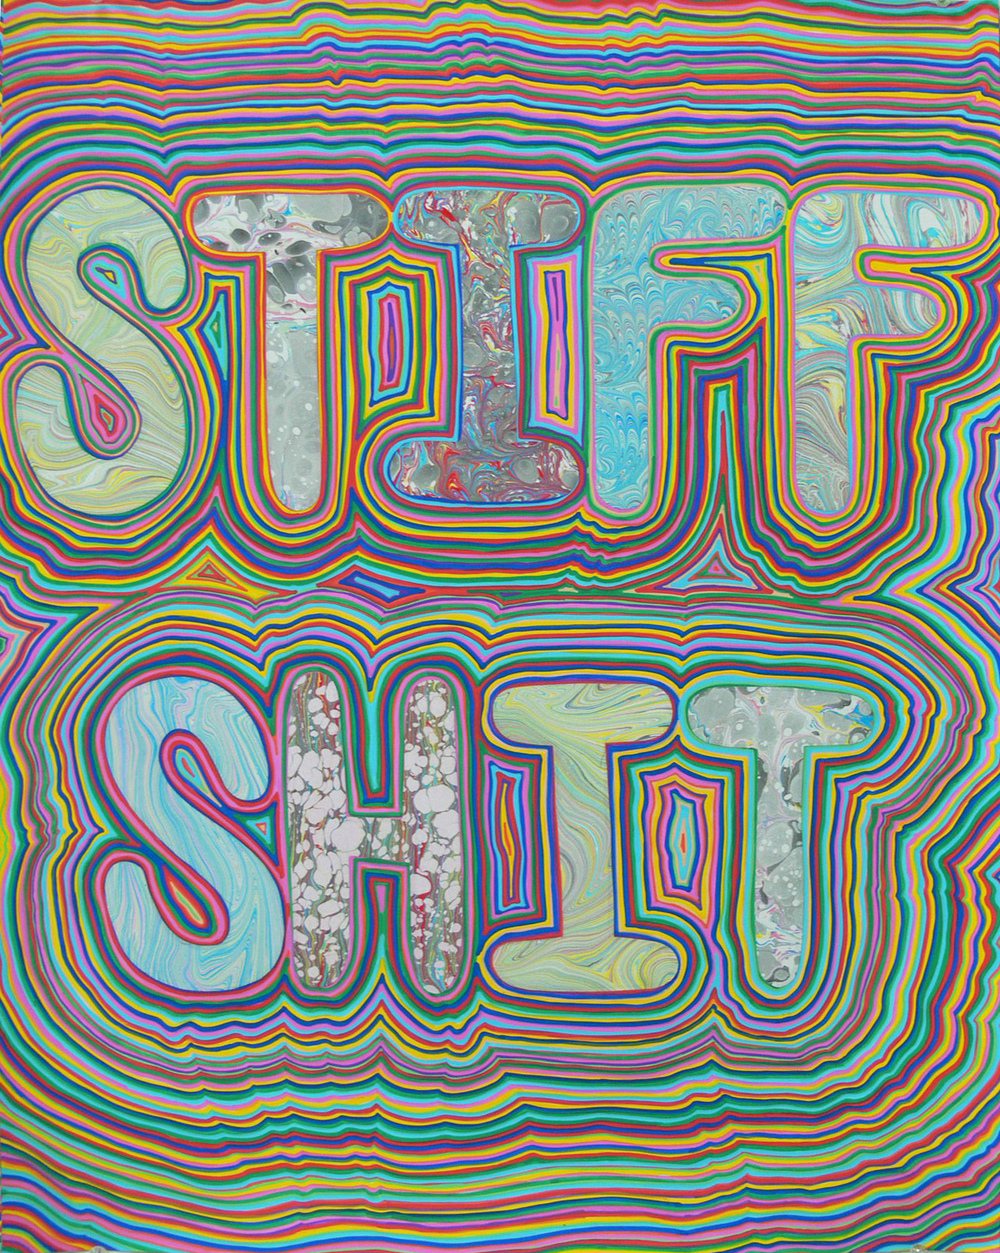 The Shits (Stiff Shit) (2015) marbled paper and acrylic paint pen on paper, 24 x 18 inches